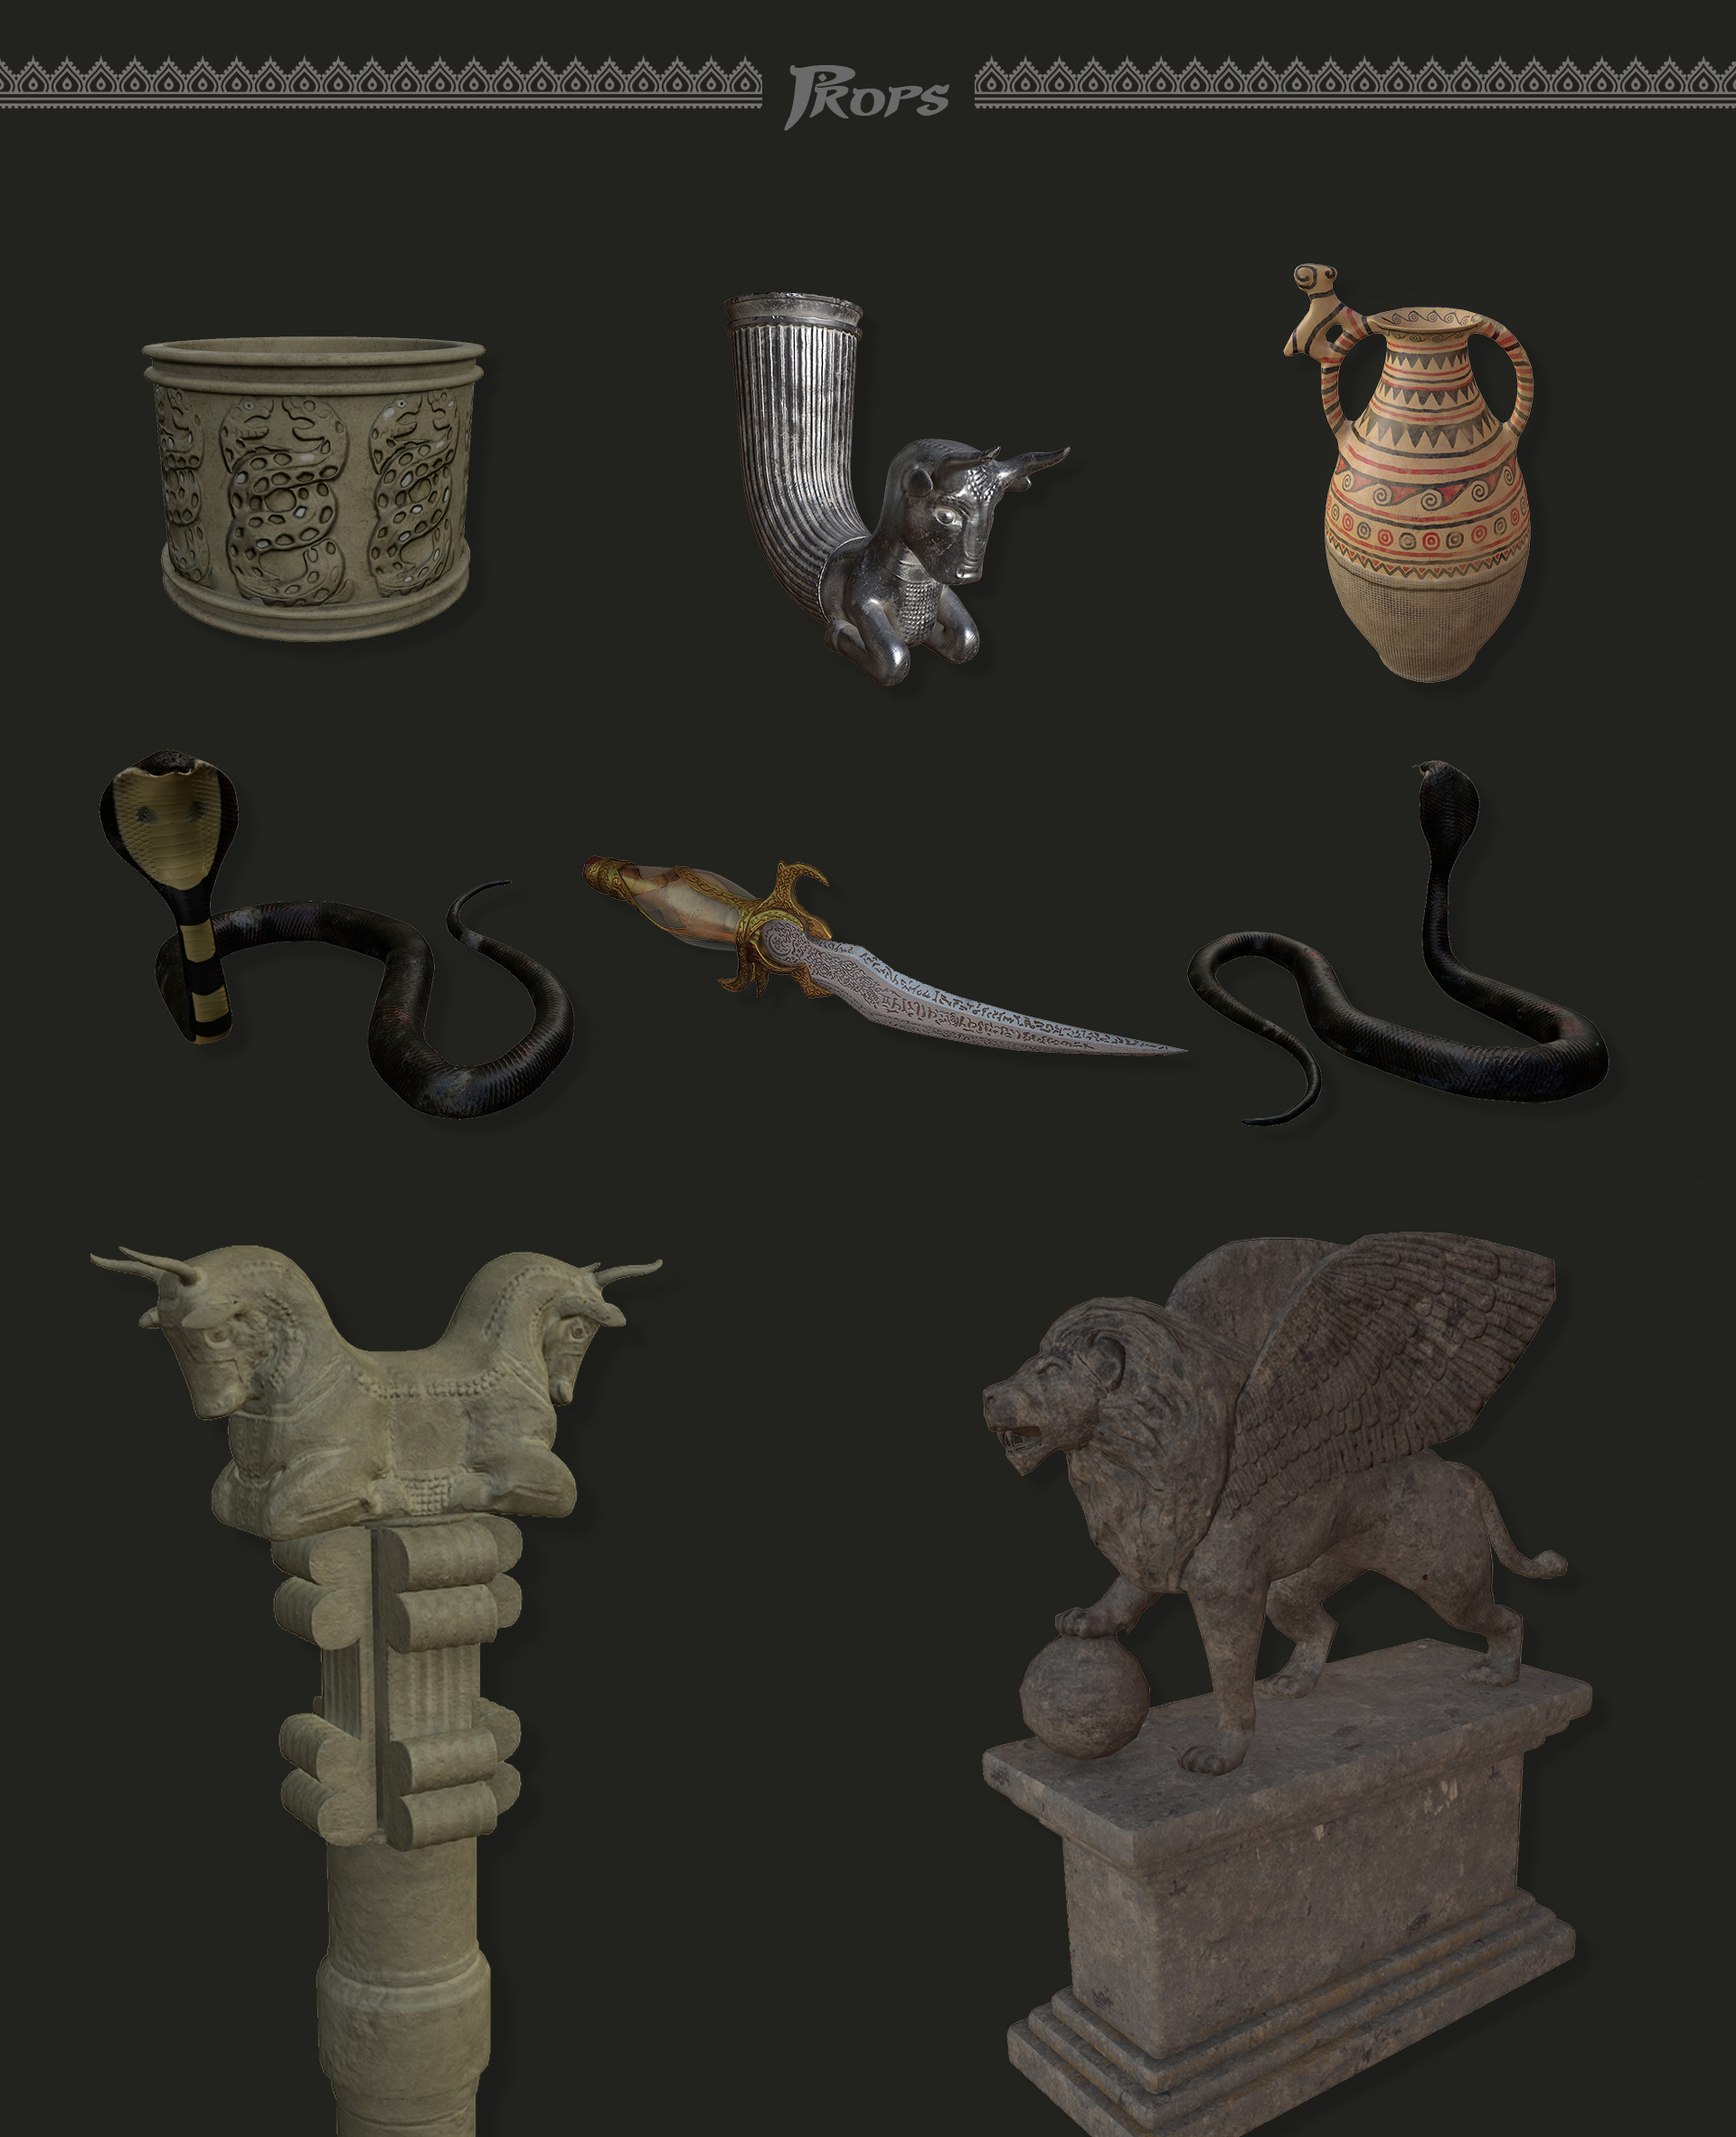 Prince of persia Chalenge props